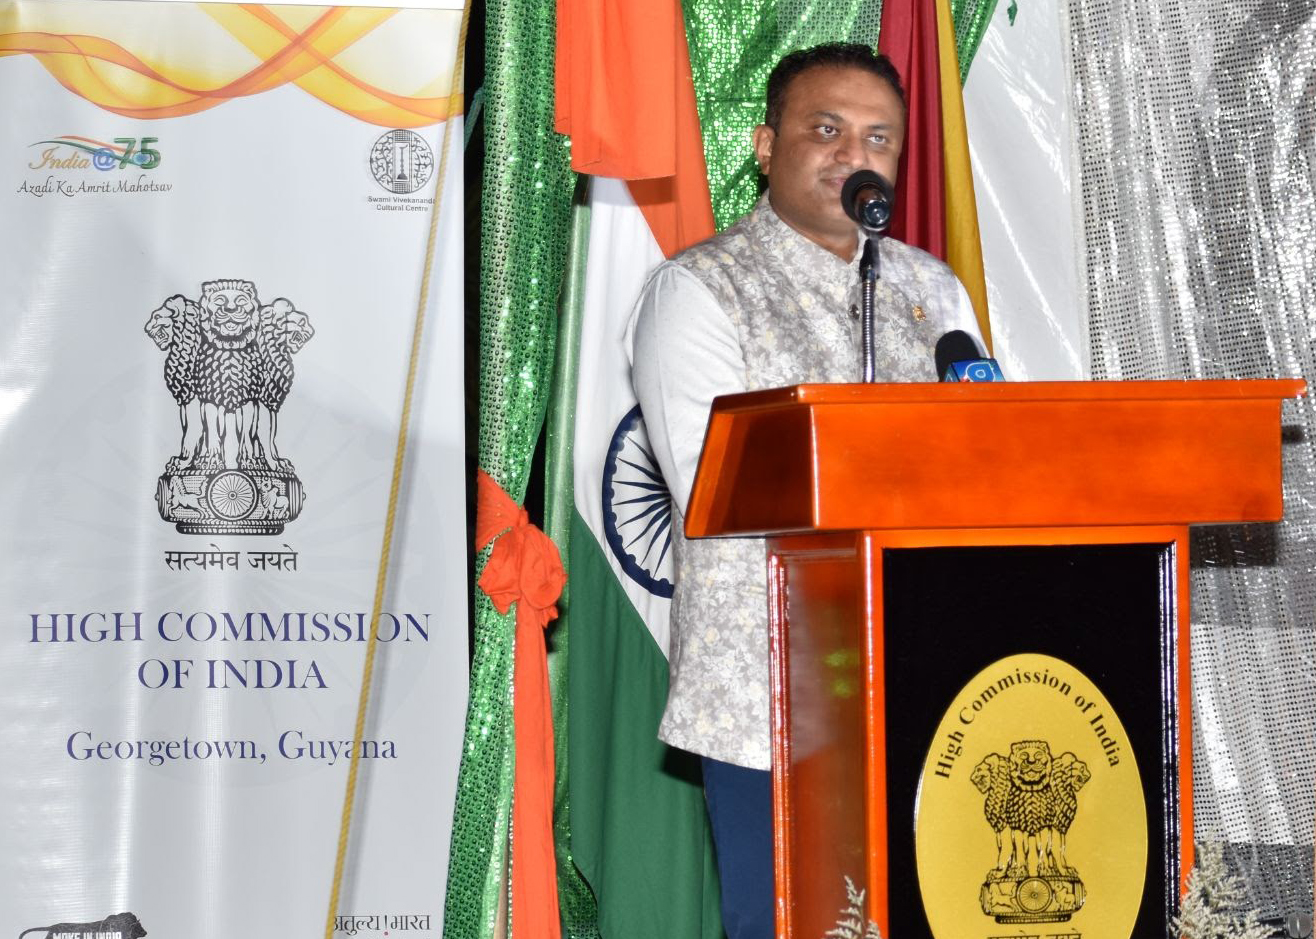 Swami Vivekananda Cultural Centre in Guyana holds cultural evening to celebrate Indian independence day